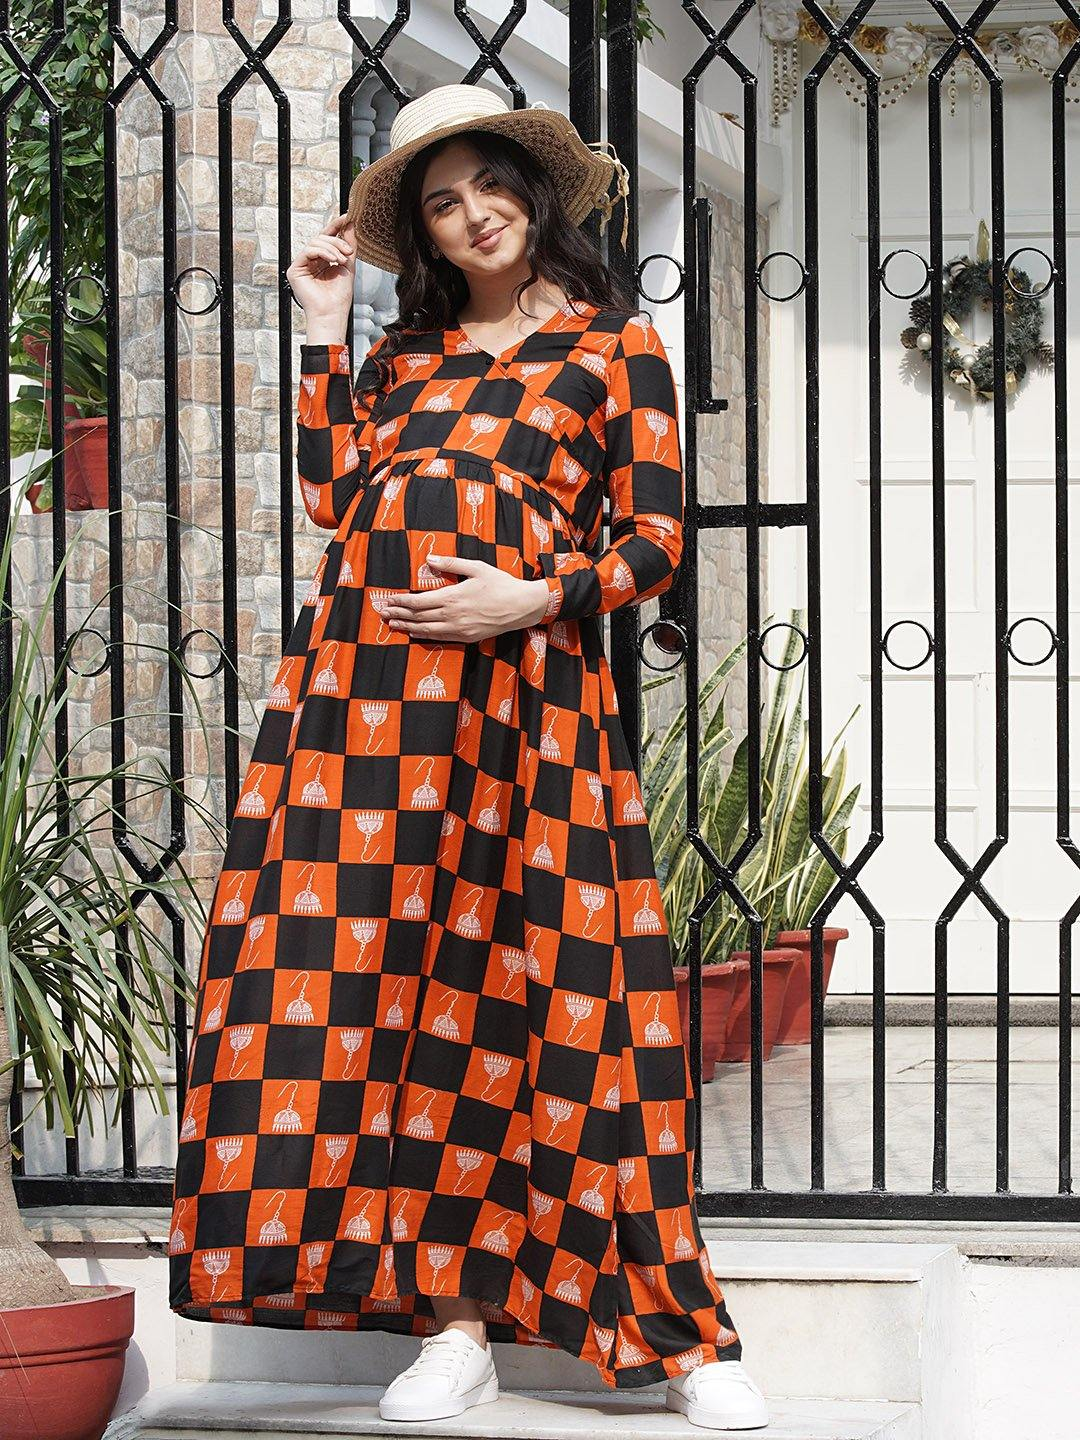 Mine4Nine - Dress - Black & Tomato Wrap Maxi Maternity Dress w/ Traditional Print, Made of Rayon